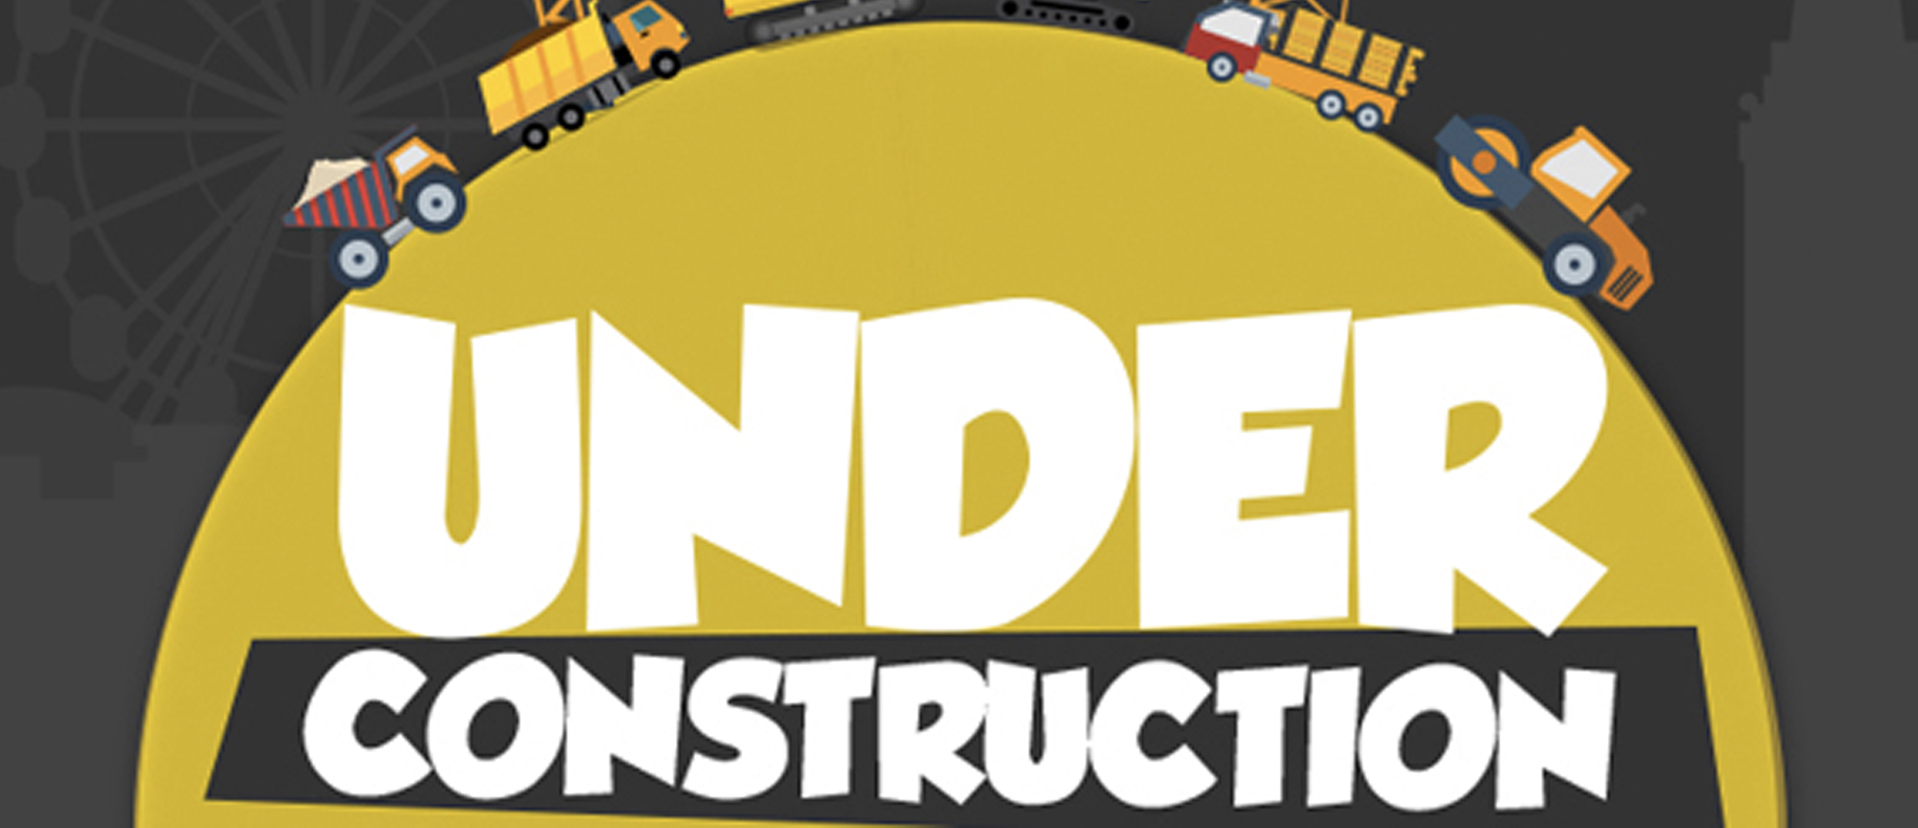 Website_Series_Header_Under_Construction.jpg